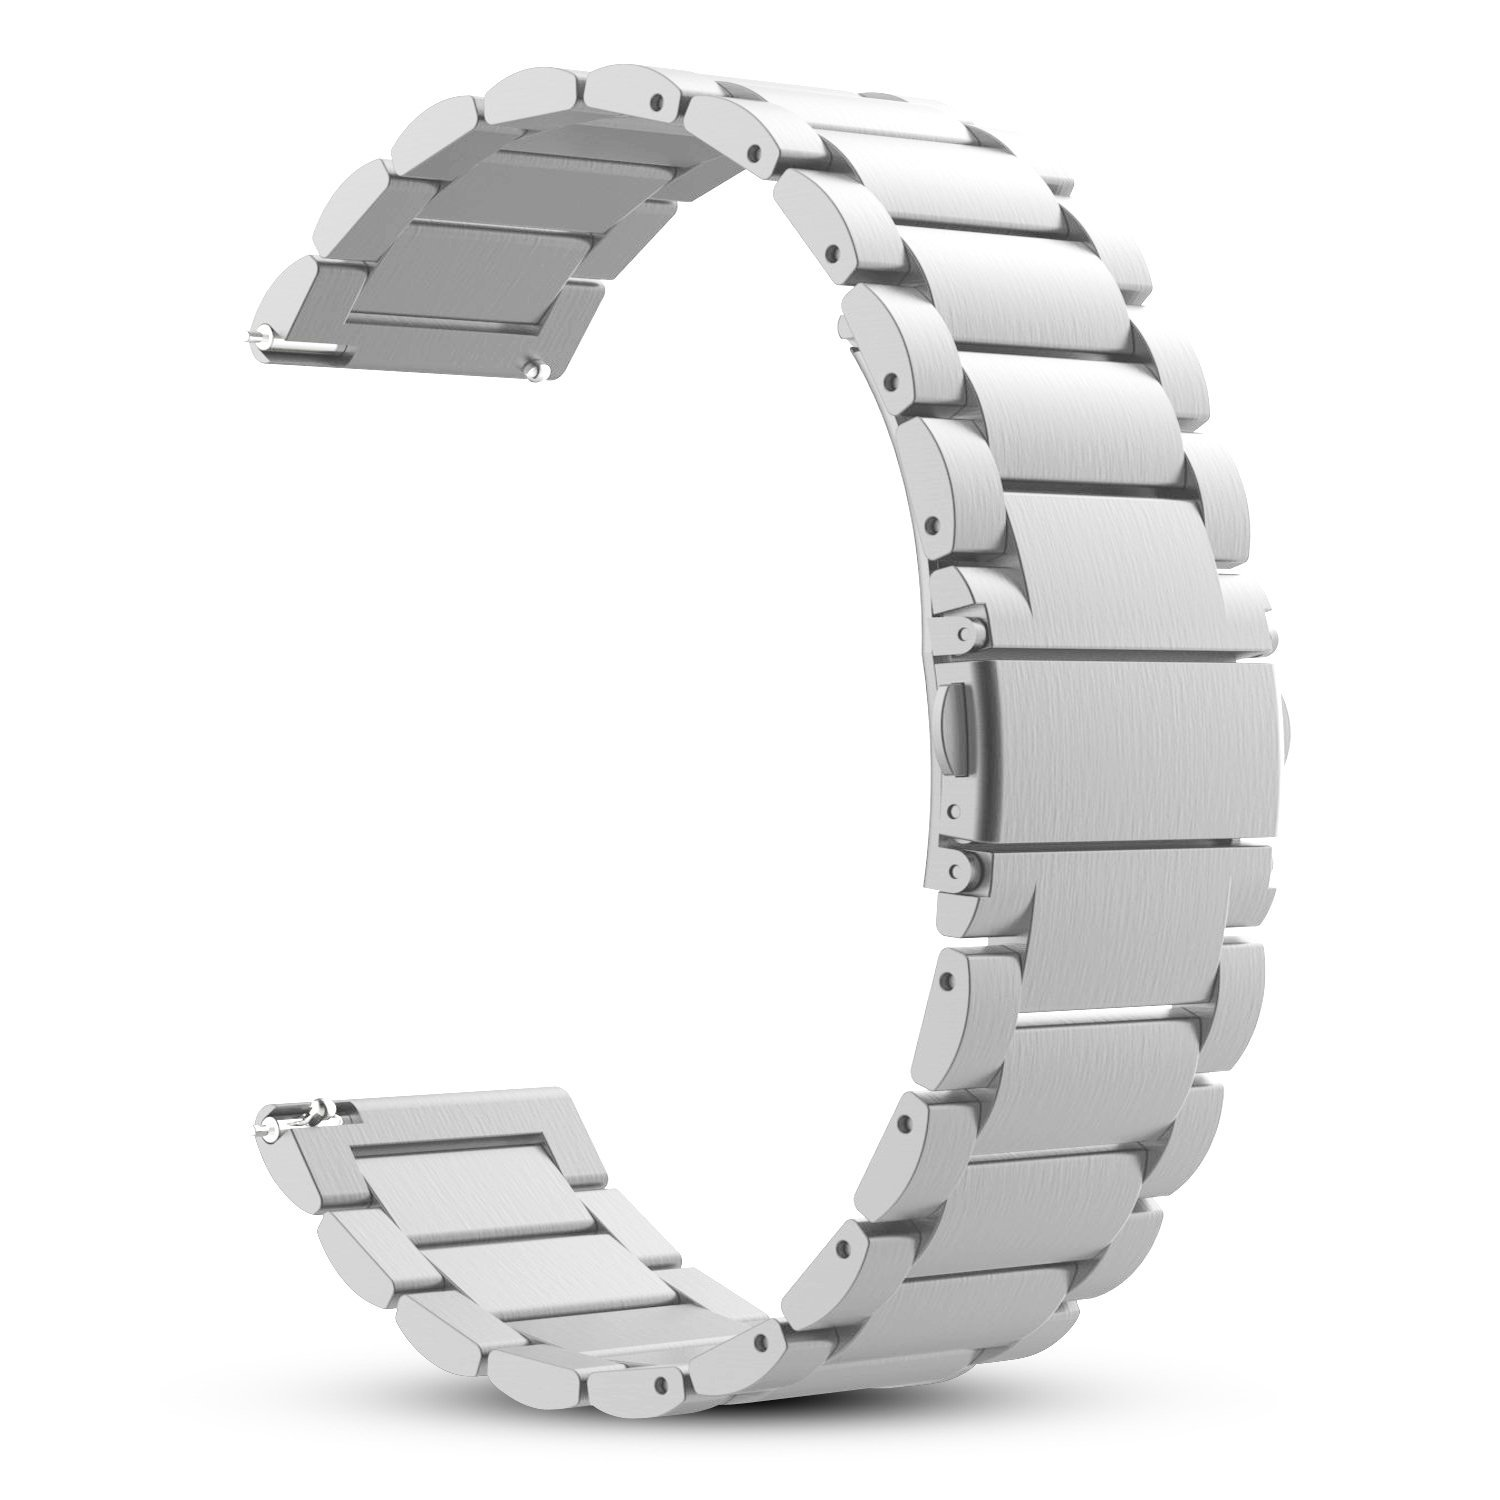 Fintie Band for Gear S3 / Galaxy Watch 46mm, 22mm Quick Release Stainless Steel Metal Replacement Strap Bands for Samsung Gear S3 Frontier / S3 Classic/Galaxy Watch 46mm Smartwatch - Silver